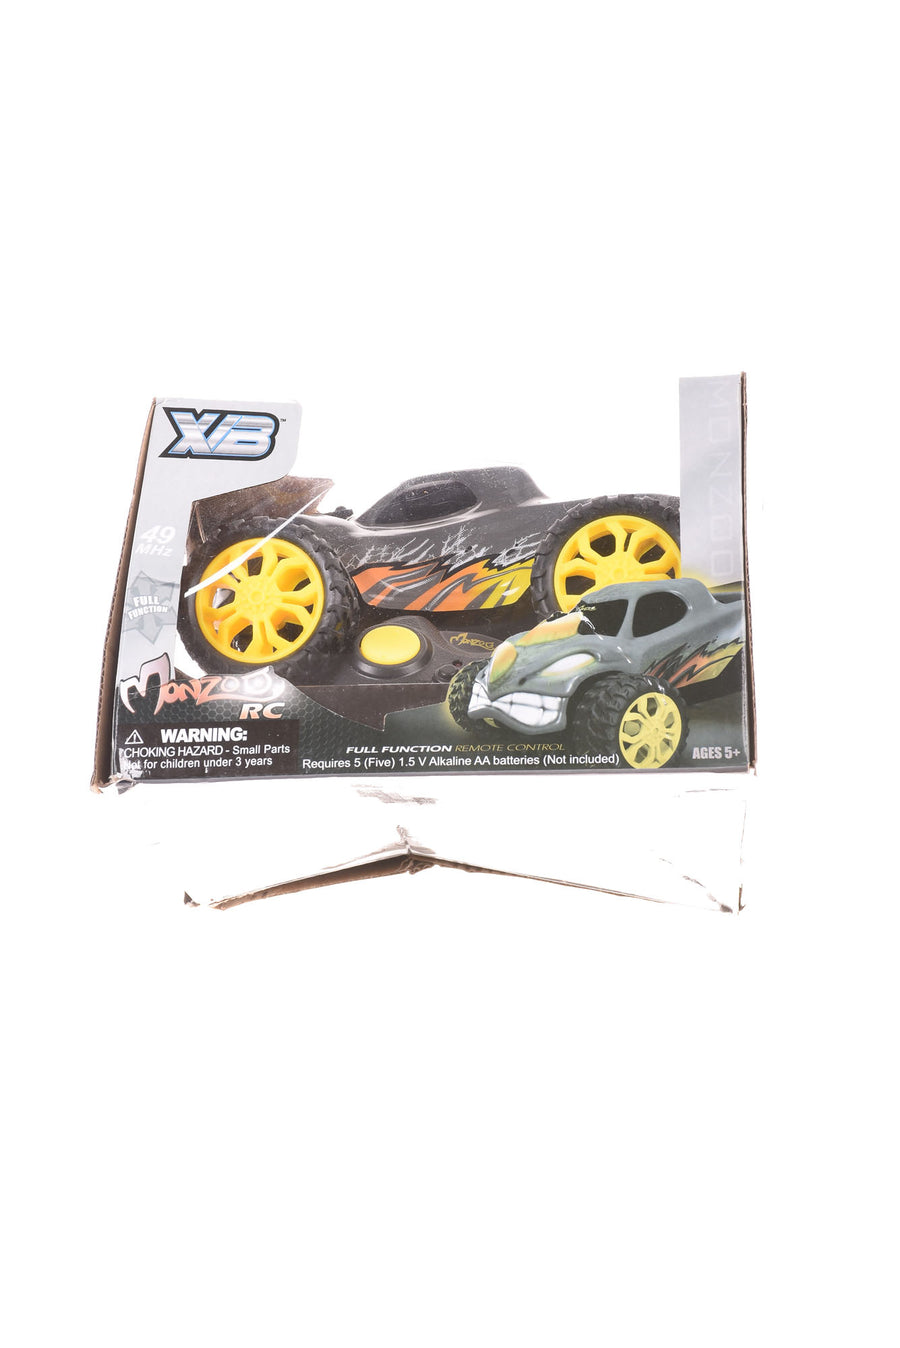 NEW Monzoo RC Remote Control Car N/A Gray & Yellow